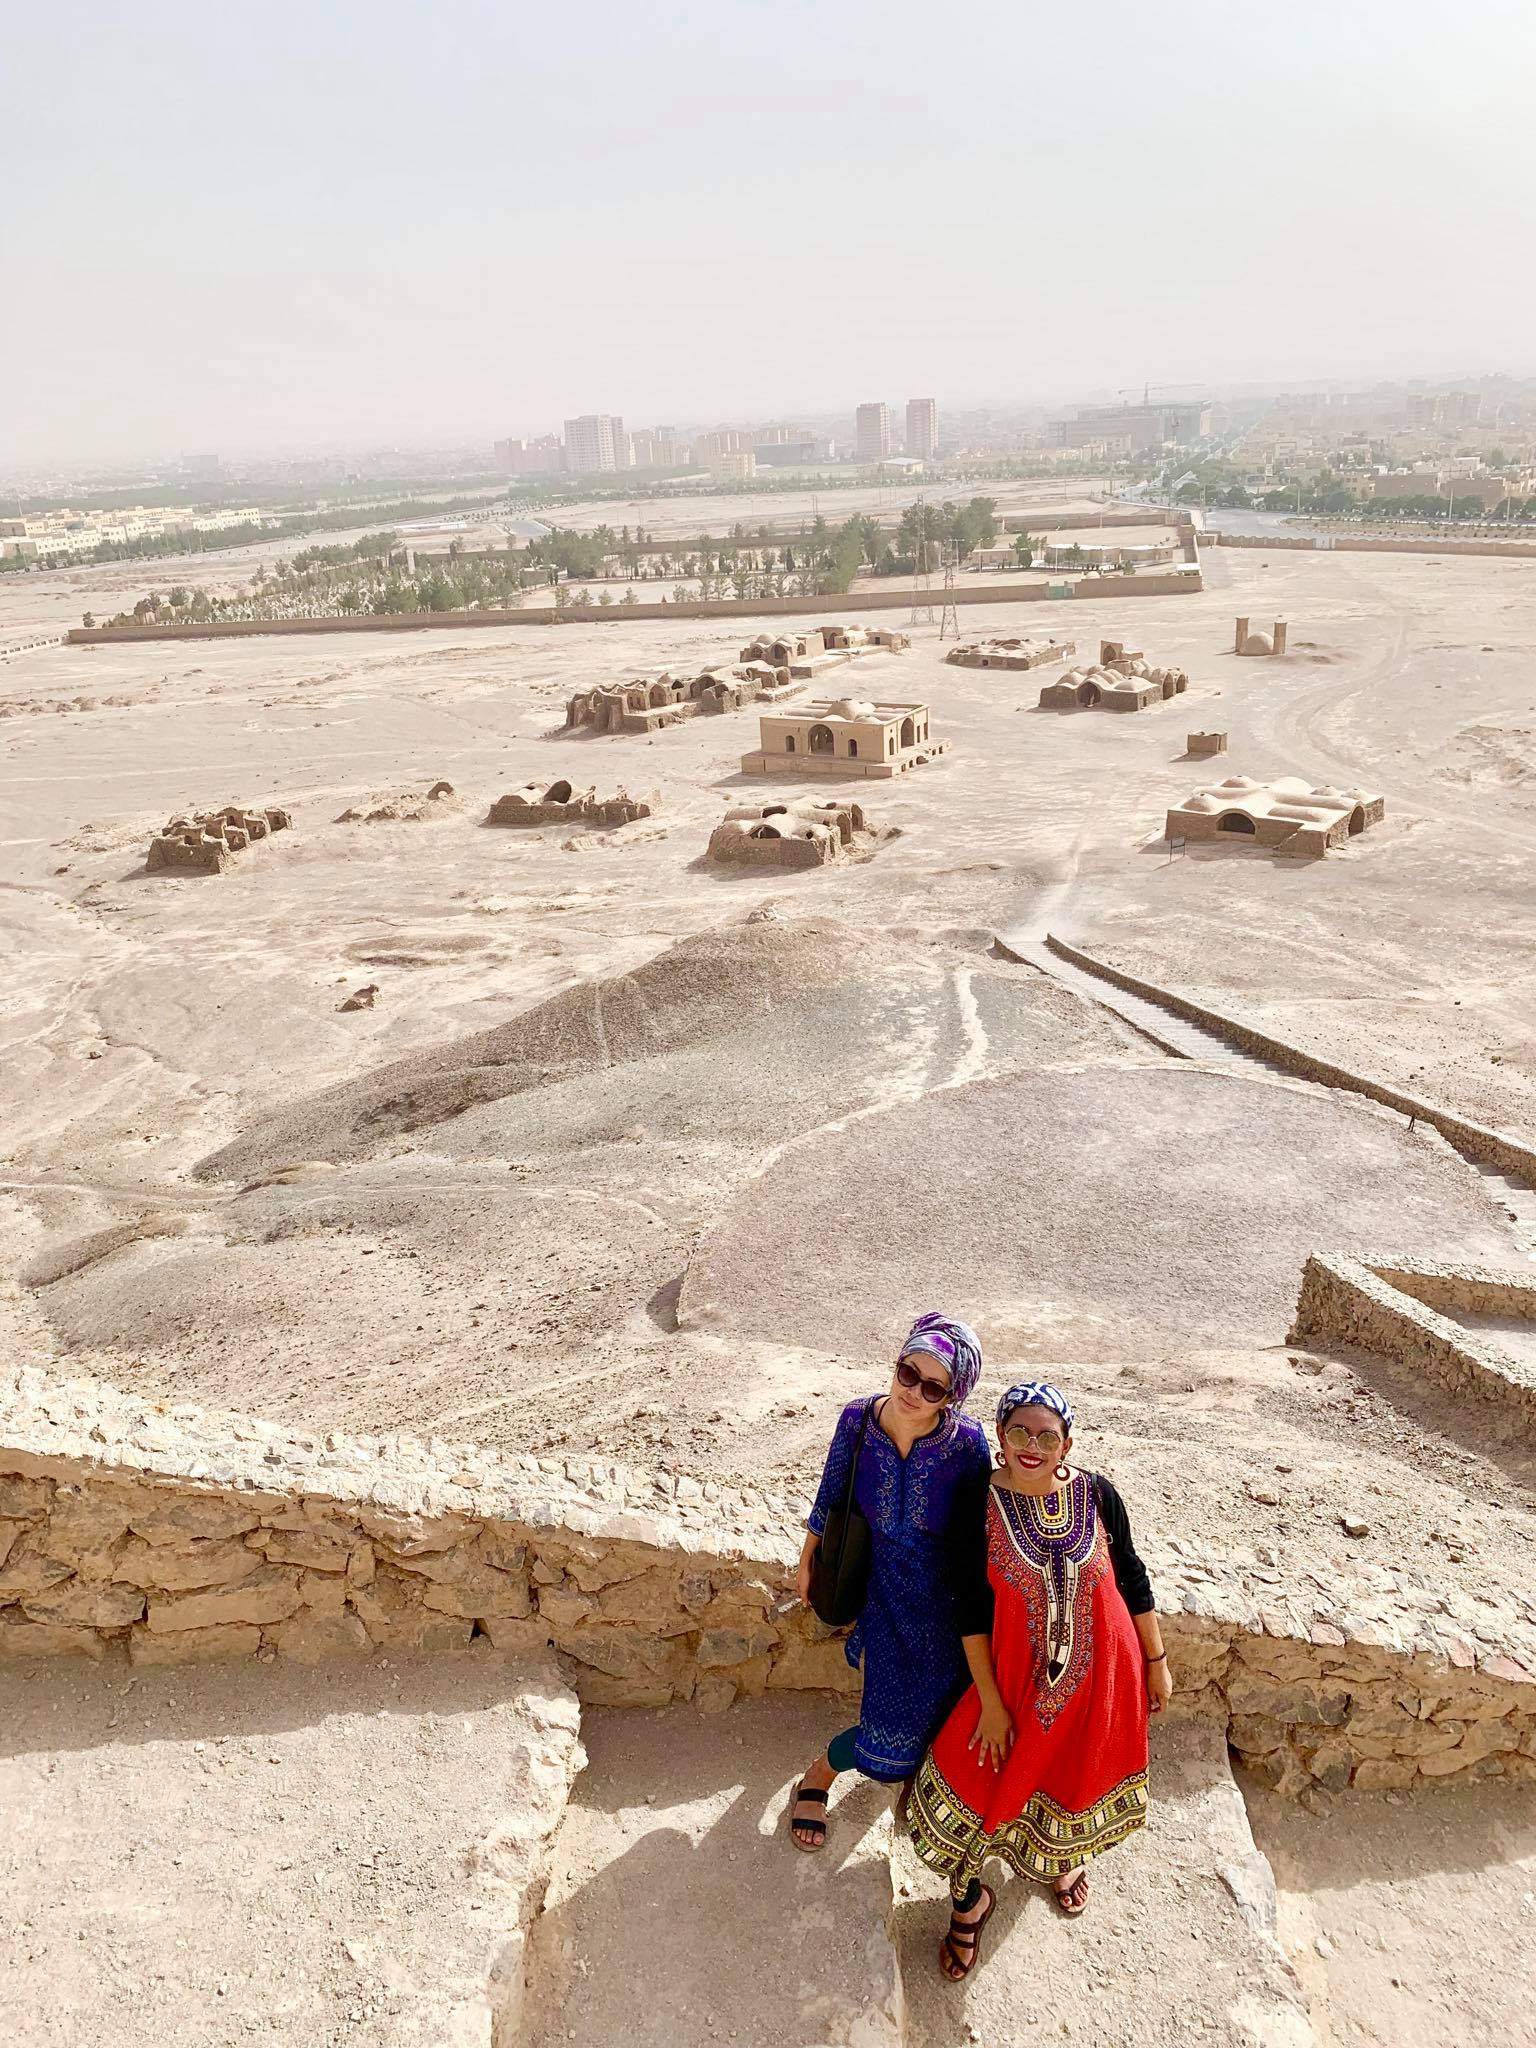 Kach Solo Travels in 2019 Pictorial today at Temple of Silence in Yazd4.jpg